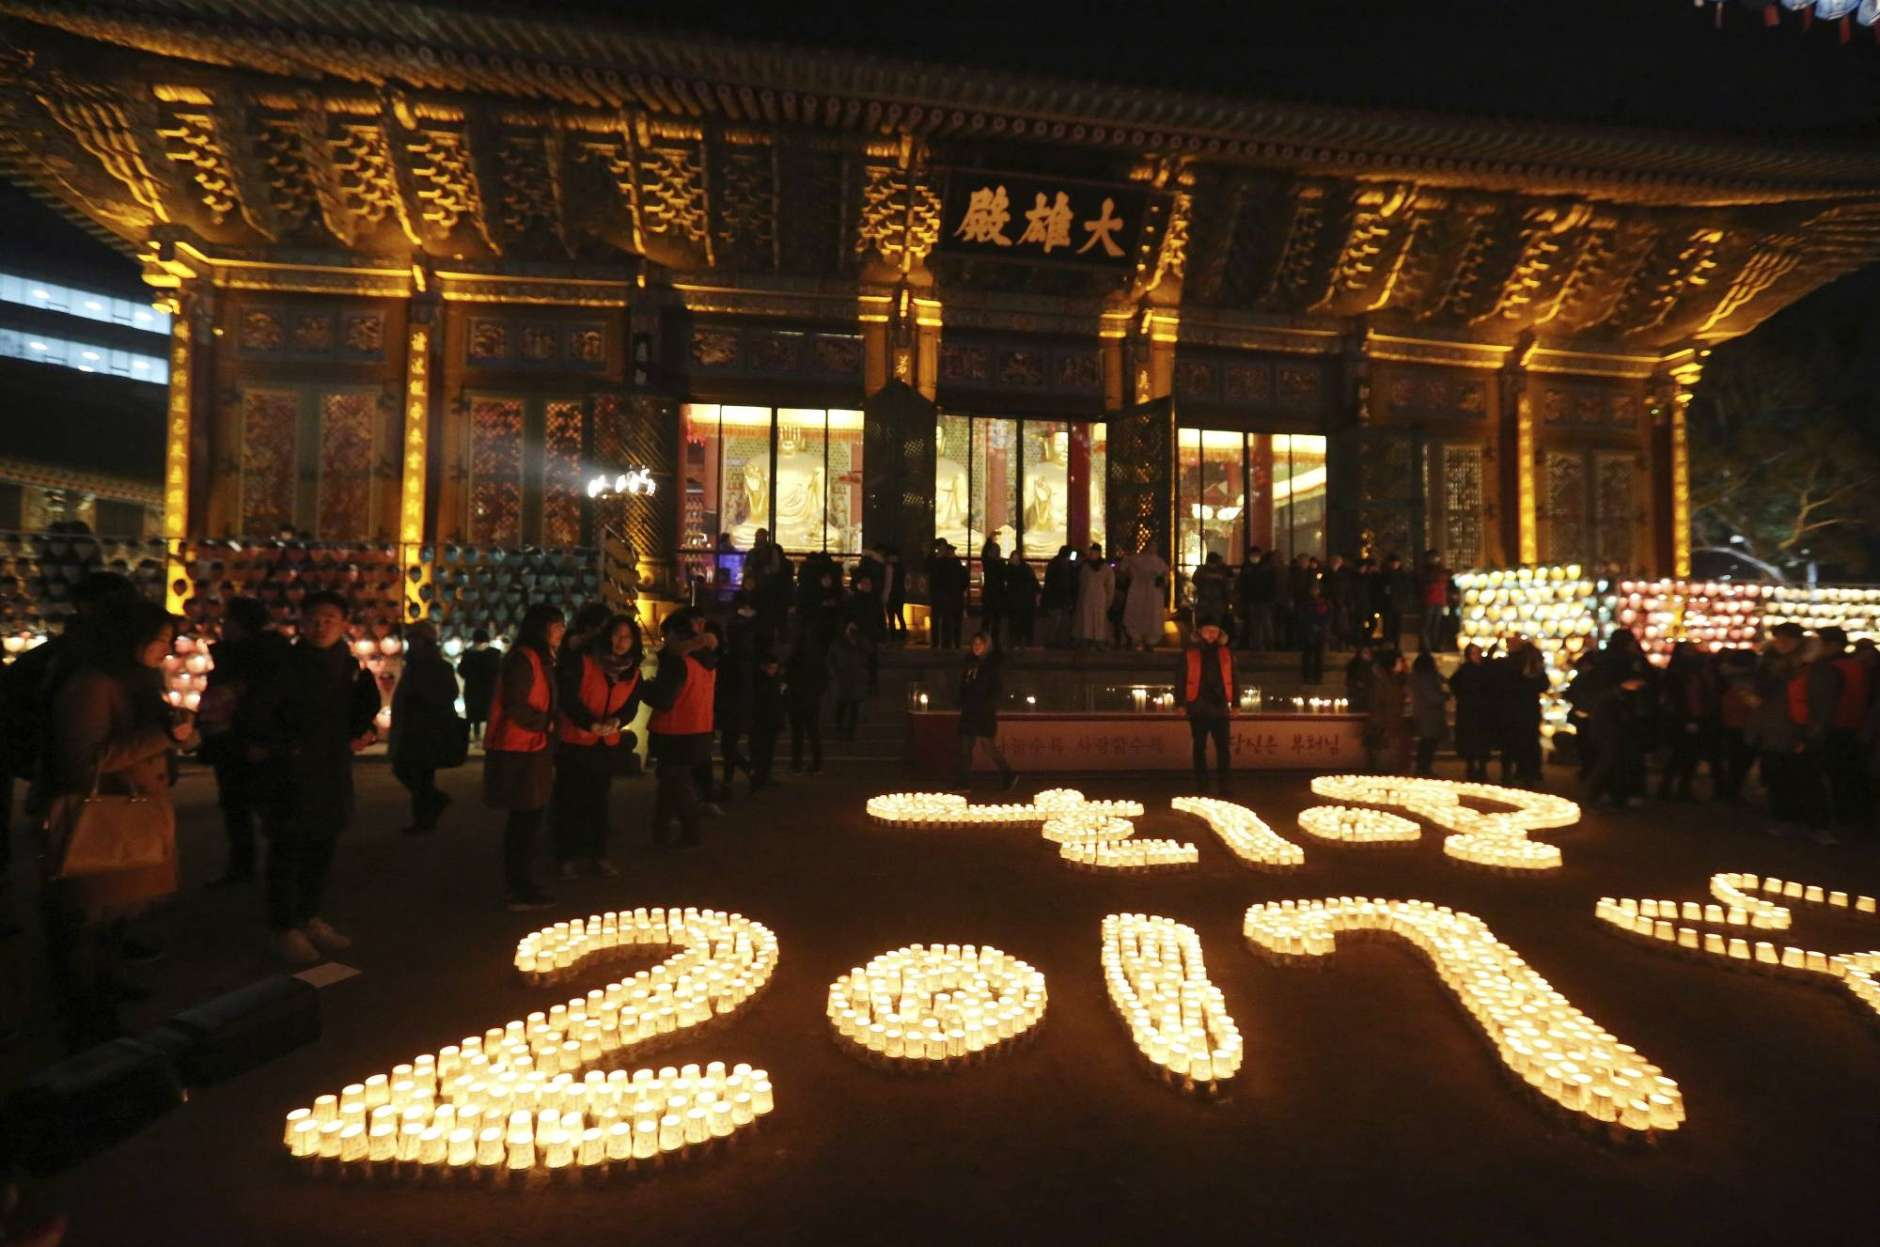 Buddhists light candles during New Year celebrations at Jogye Buddhist temple in Seoul, South Korea, early Sunday, Jan. 1, 2017. (AP Photo/Ahn Young-joon).